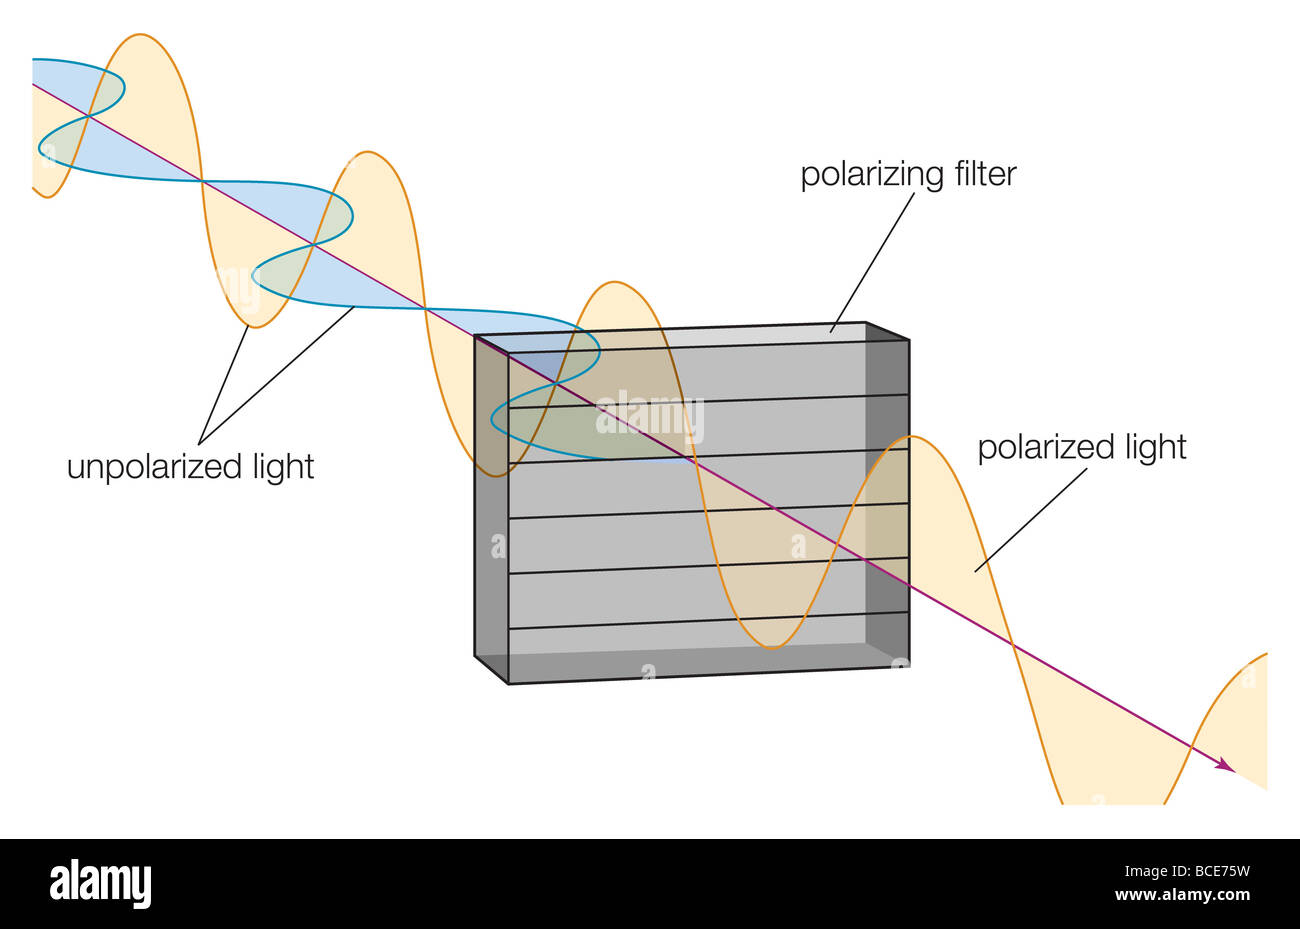 Light Waves Matching The Orientation Of Molecules A Polarizing Filter Are Absorbed Reducing Intensity